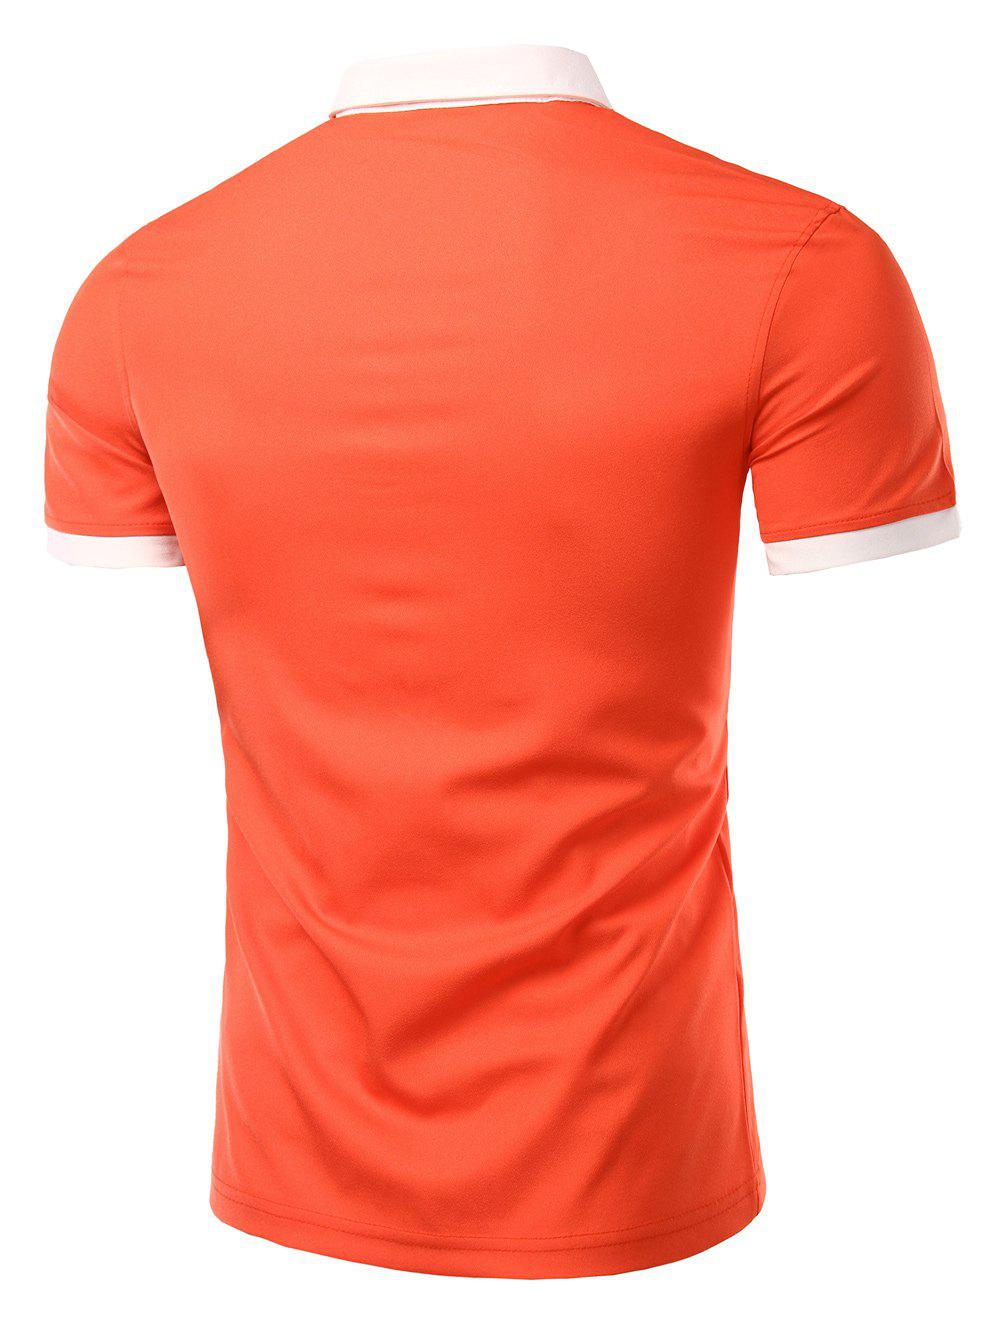 Men's Fashion Turn-down Collar Solid Color Short Sleeves Polo T-Shirt - JACINTH L